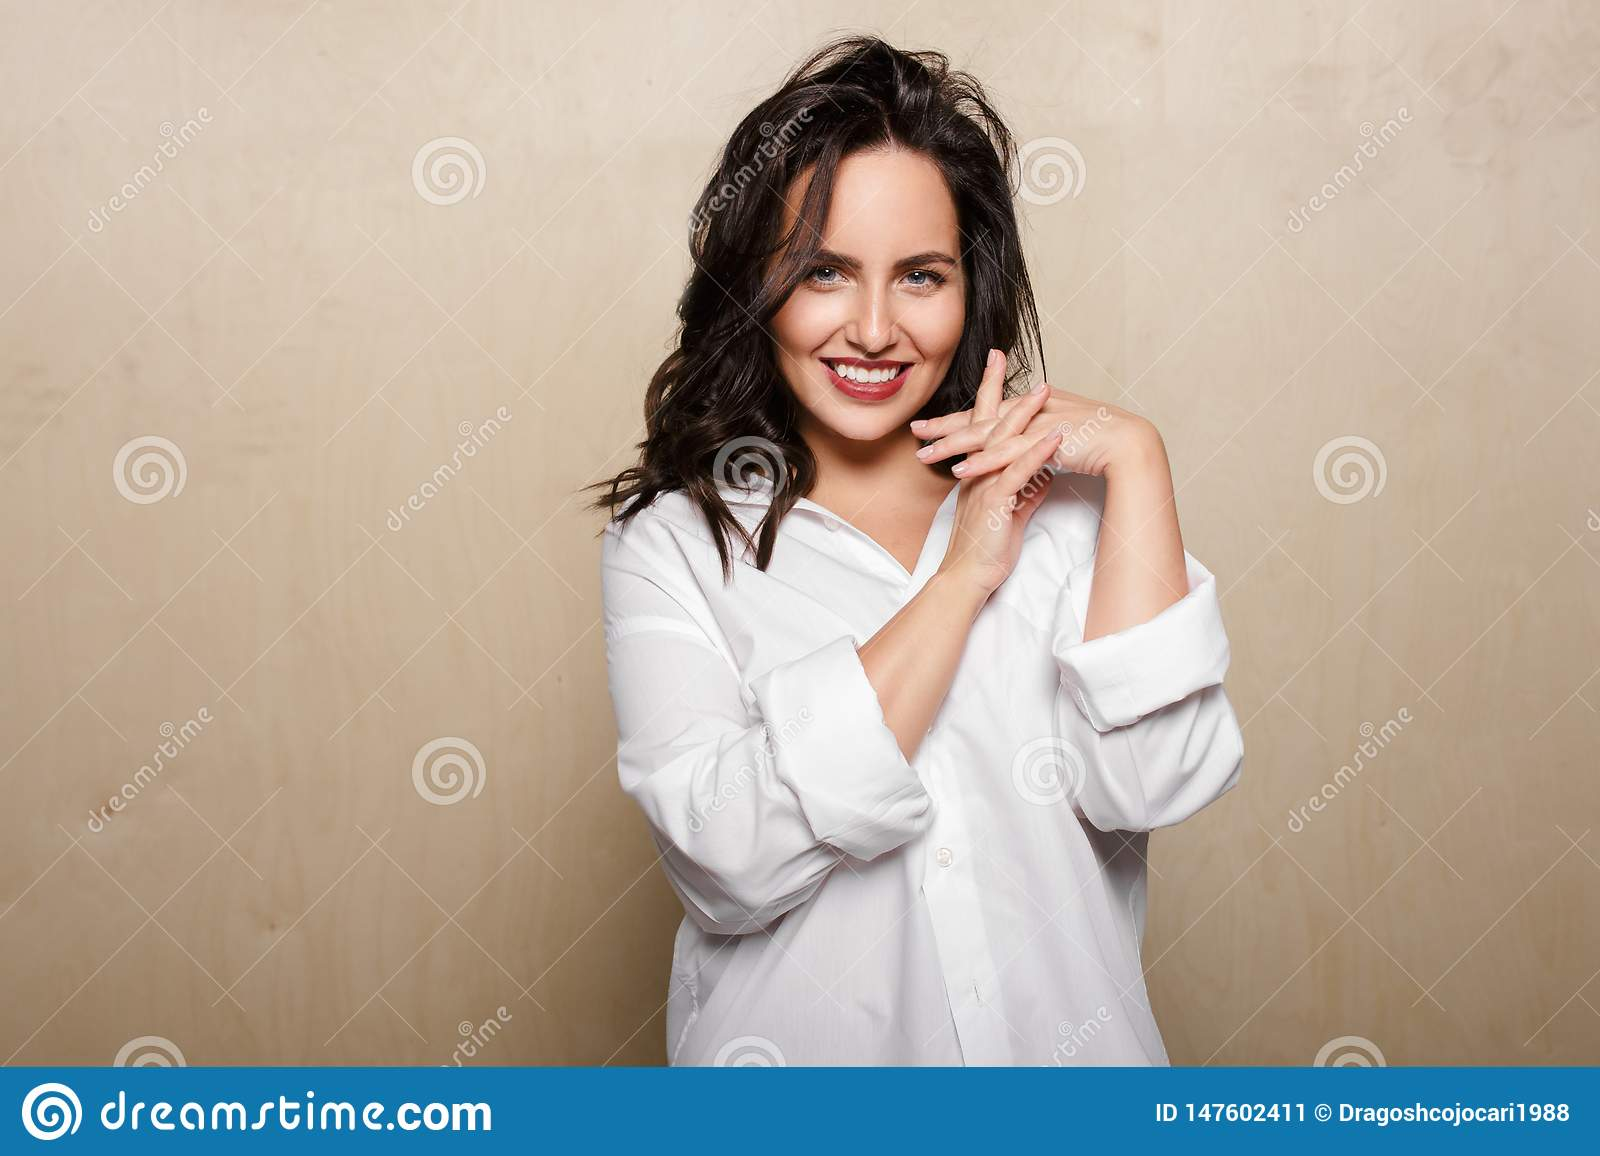 Smiling female model in white shirt, on a beige background, holding a crossed fingers.